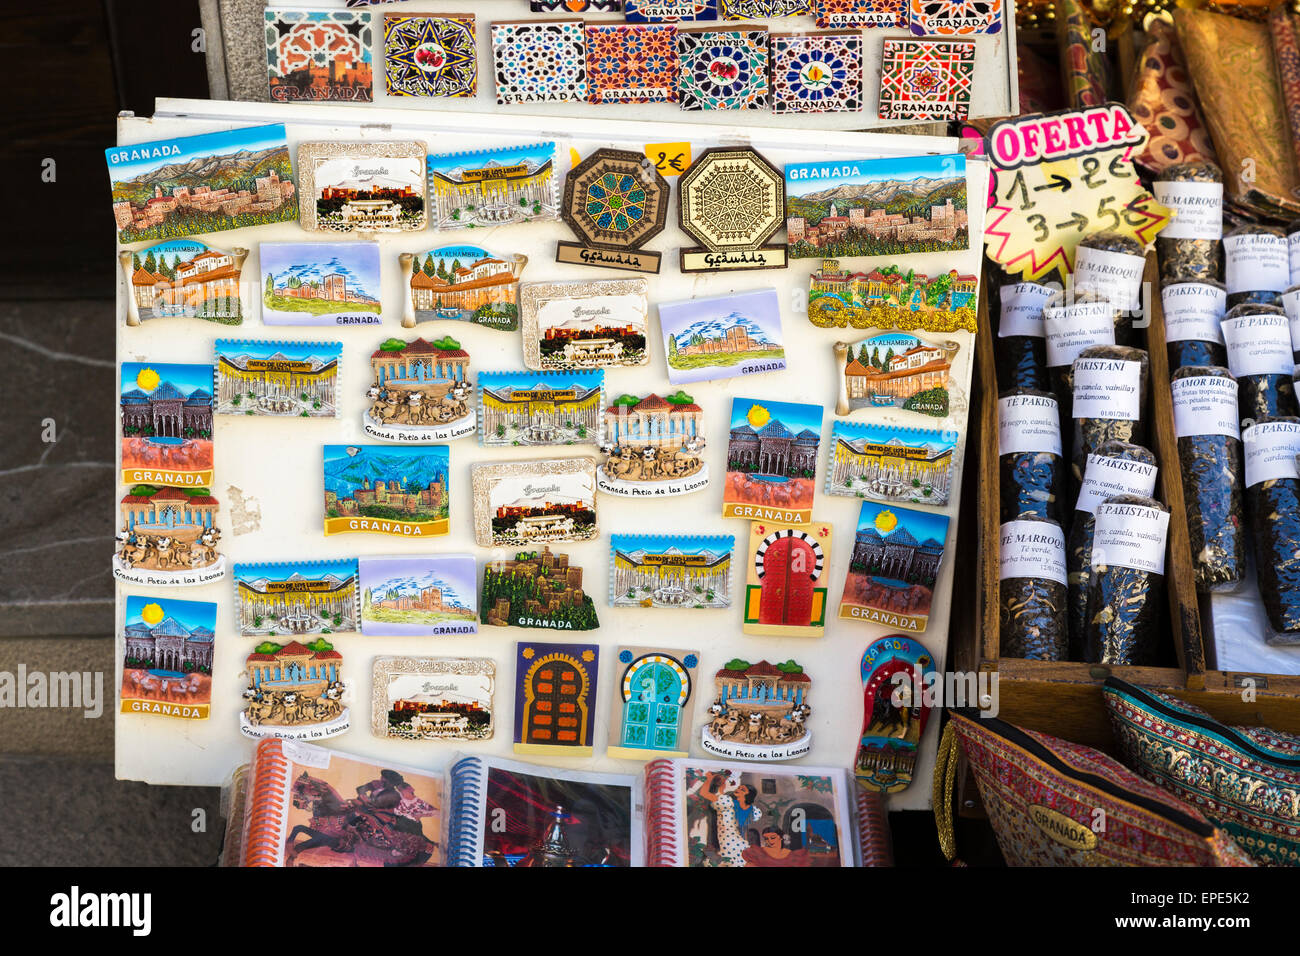 Colourful Fridge Magnet Tourist Souvenirs Of Granada On Display Outside Epe K